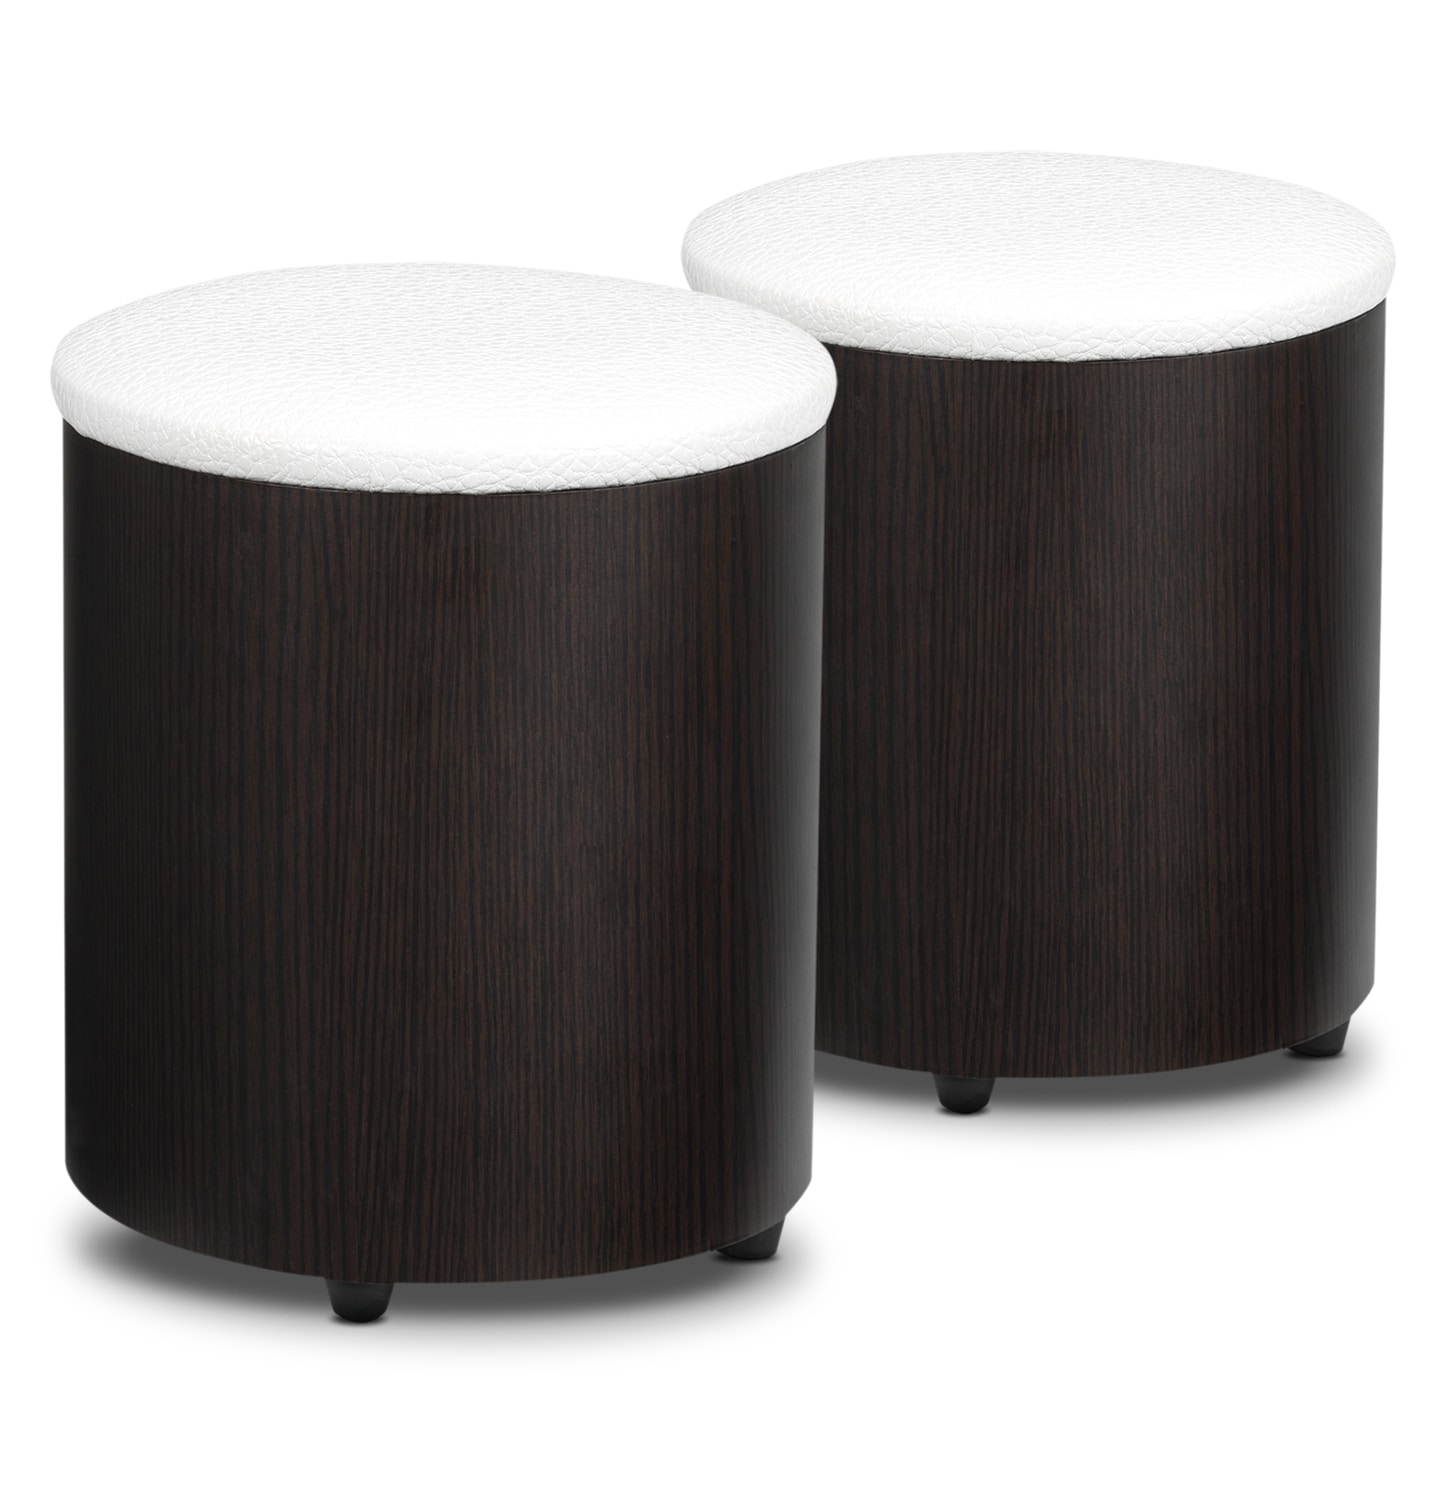 Accent and Occasional Furniture - Serpentine Cocktail Stool Set - Espresso, Silver